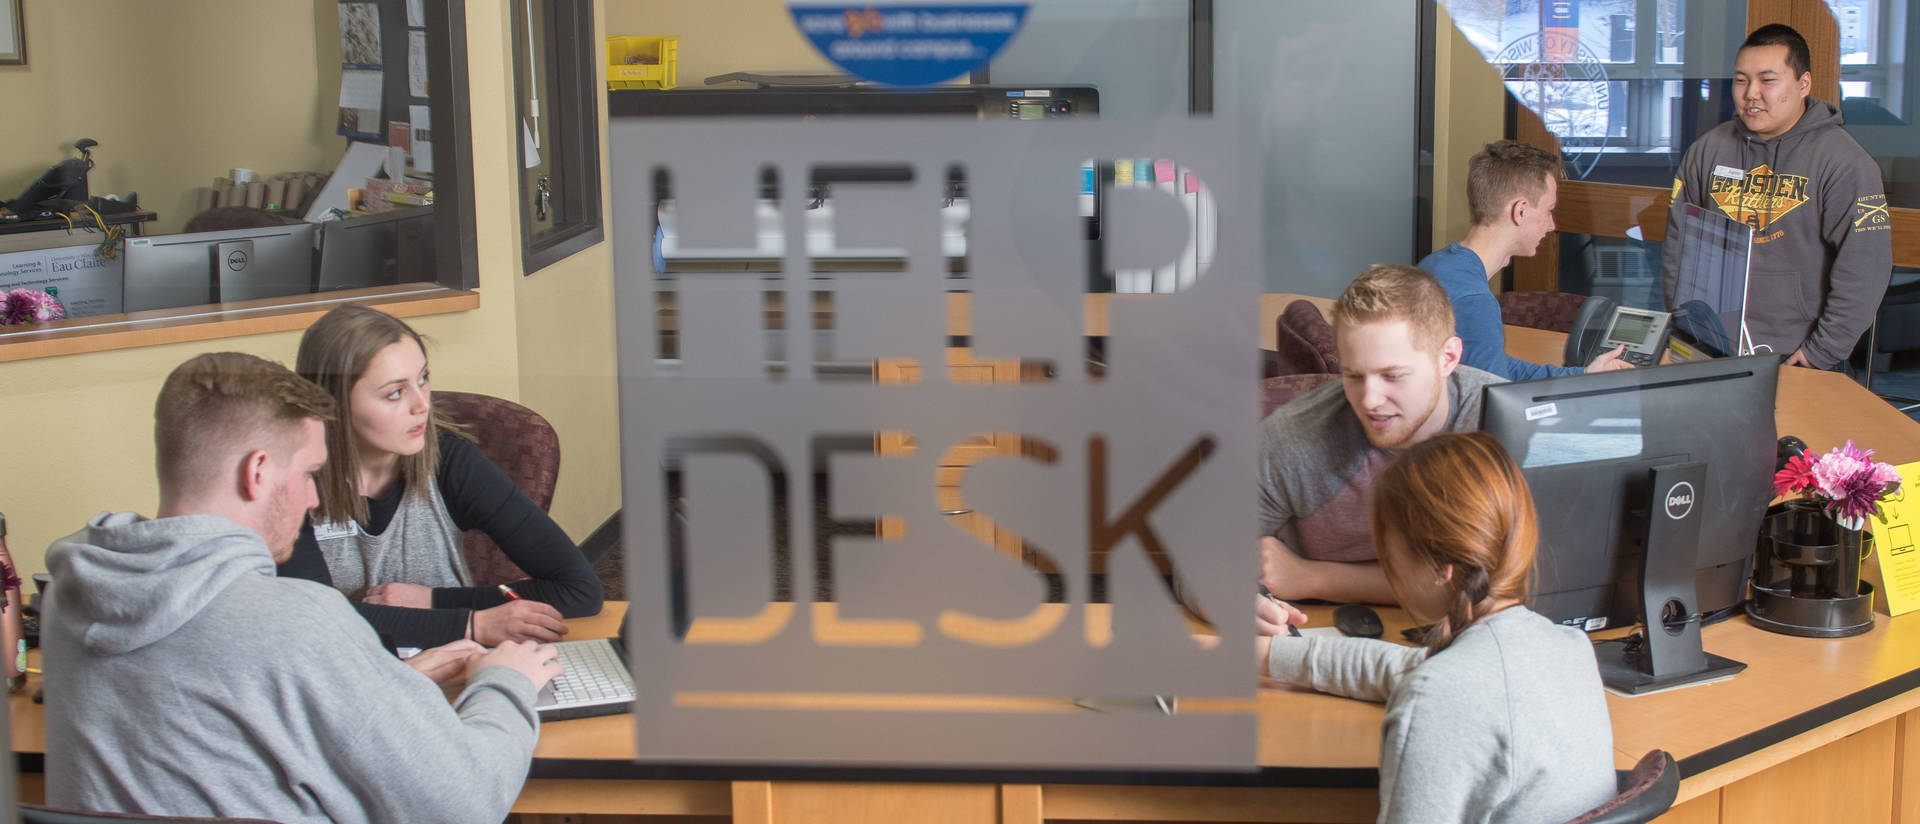 Students working at the help desk in LTS